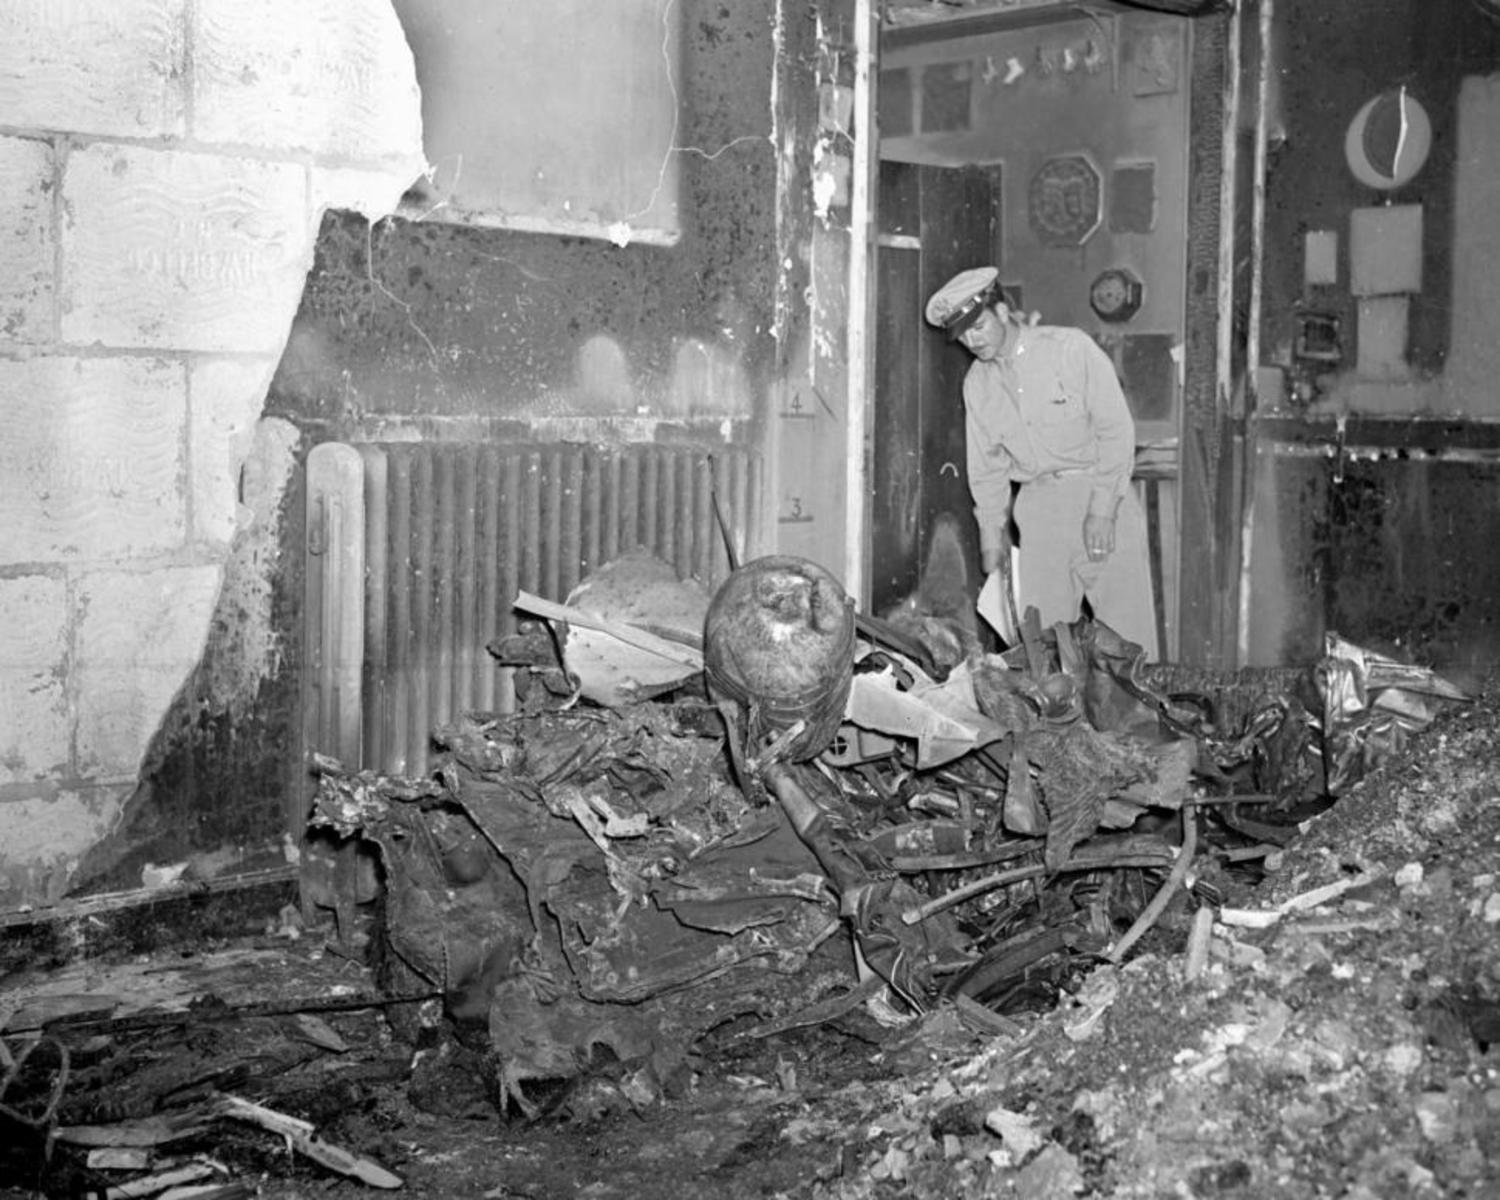 One of the bomber's motors, trailing part of the plane, crashed through two walls of the building, plummeted through roof and ended up burning in studio at 10 W. 33d St.